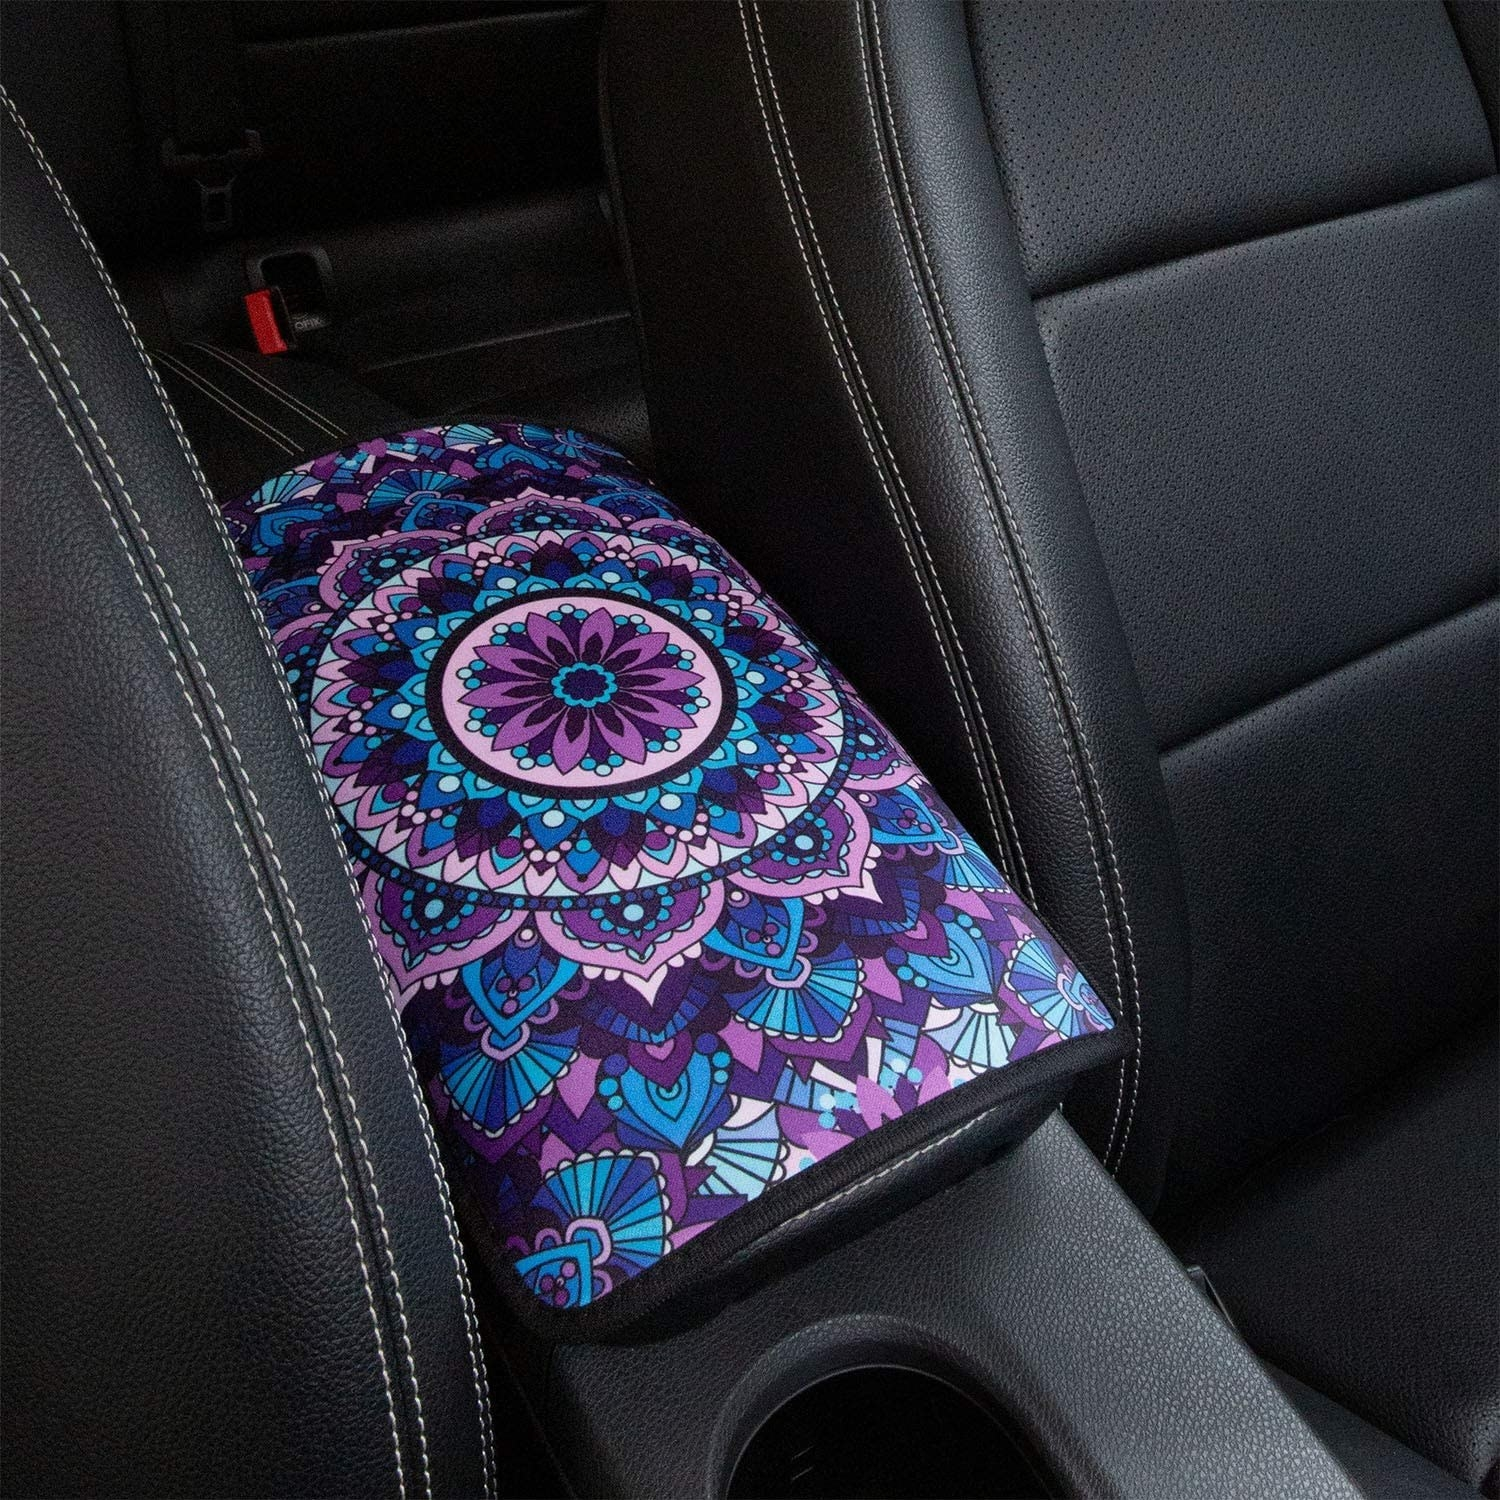 A patterned armrest attached to the centre console of a car